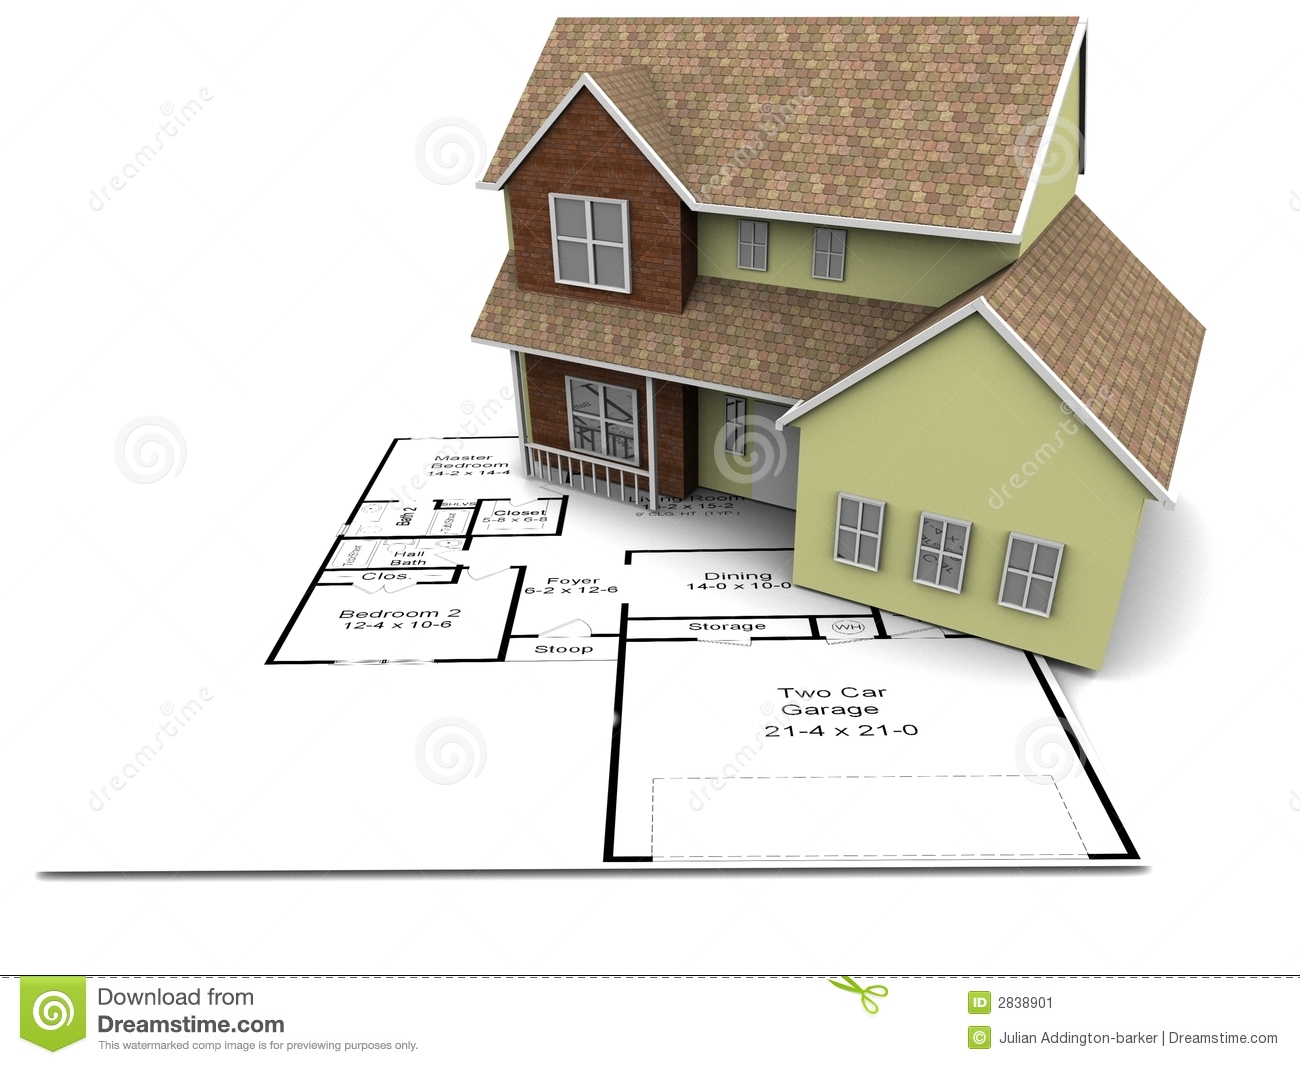 New house plans stock image image 2838901 House plans